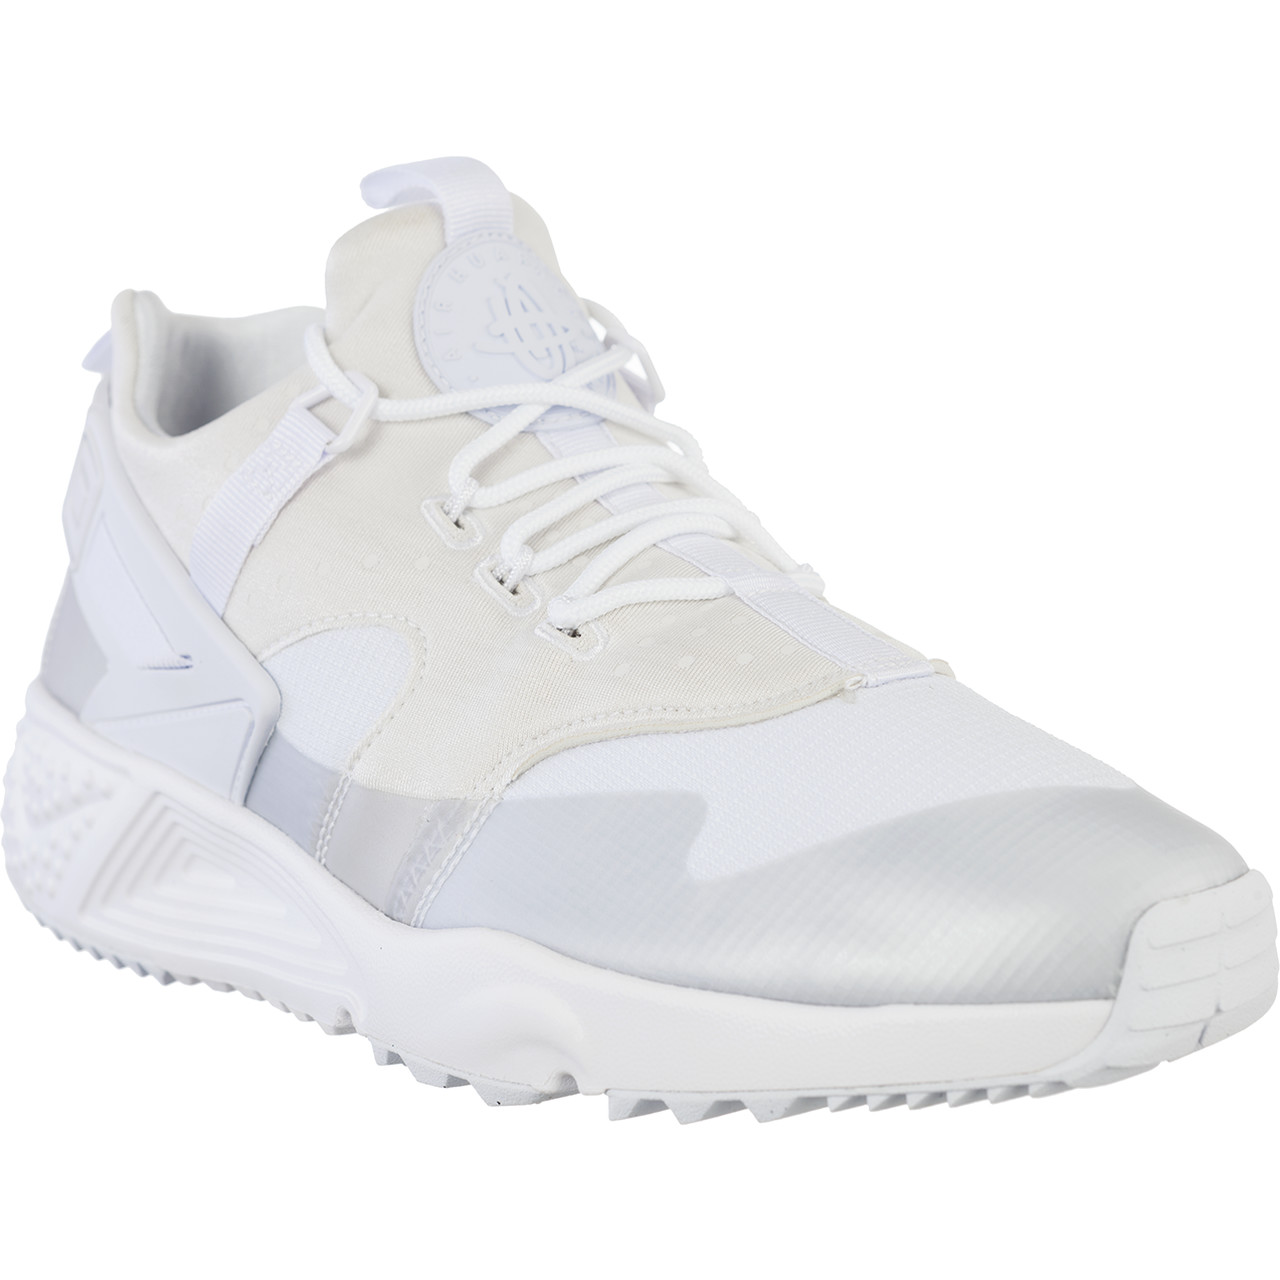 on sale c6e75 7a3bf ... Buty Nike brsmallAir Huarache ...